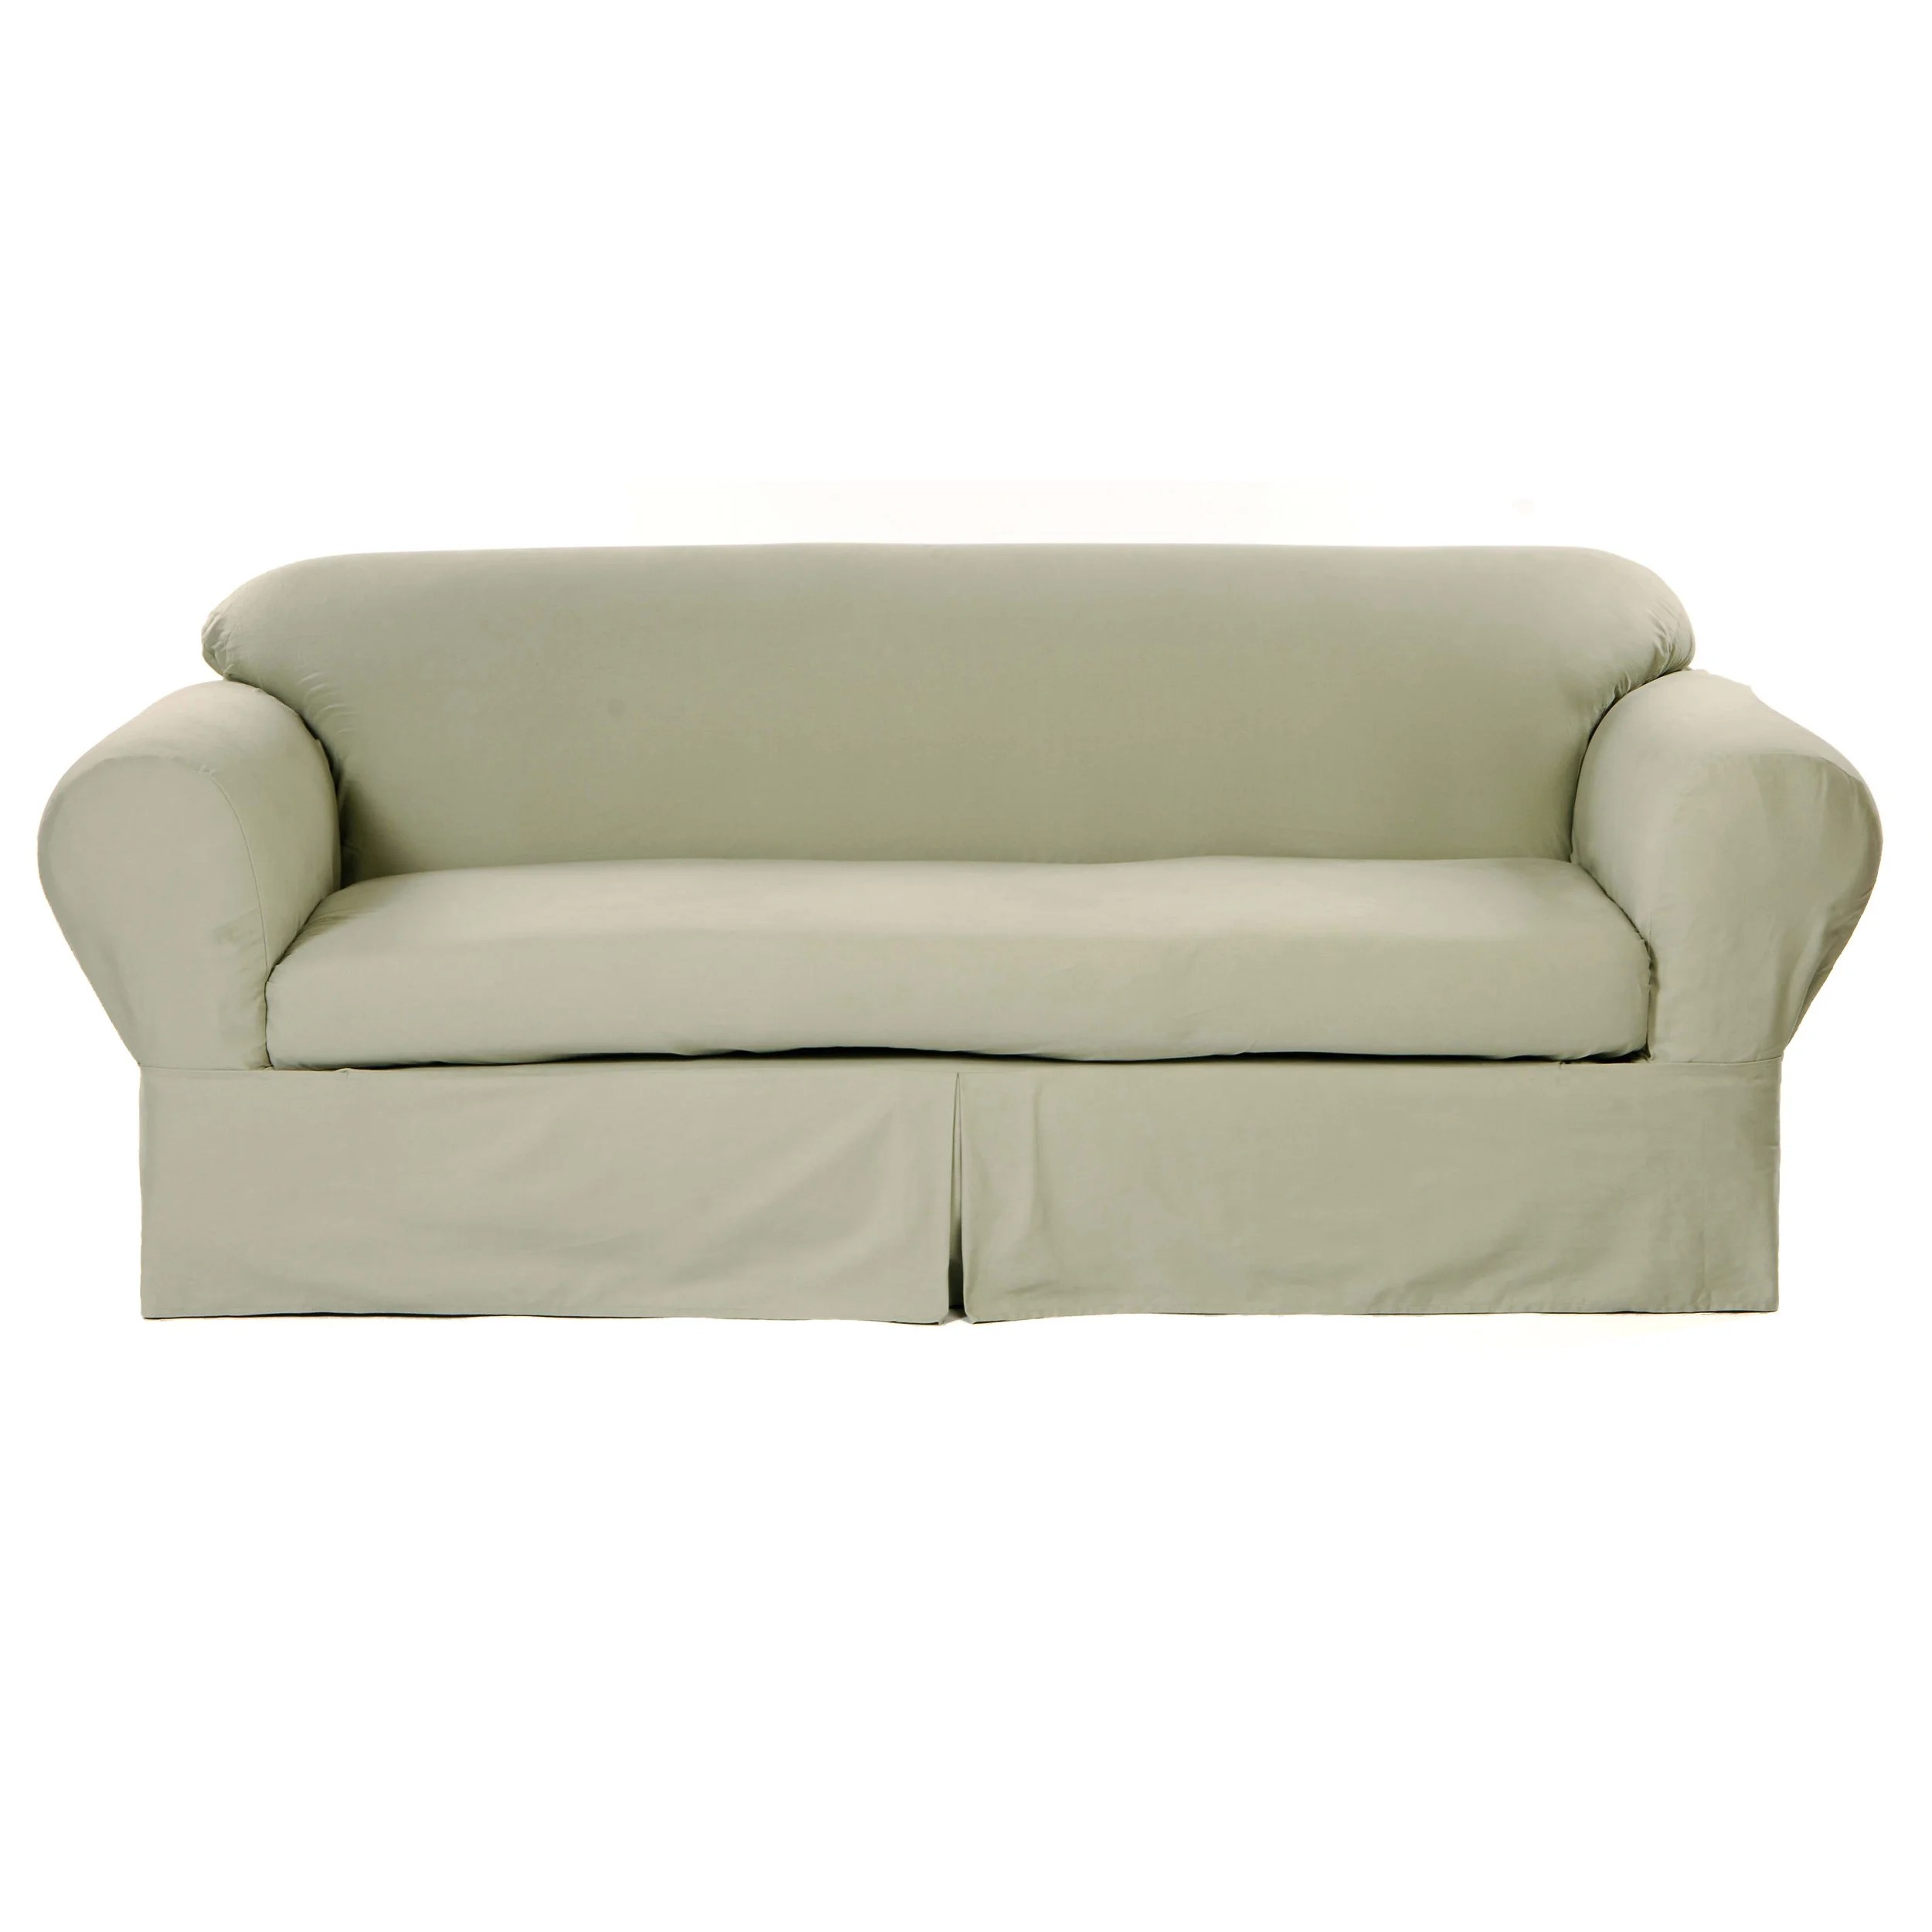 Seats En Sofa Arnhem Buy Cotton Sofa Couch Slipcovers Online At Overstock Our Best